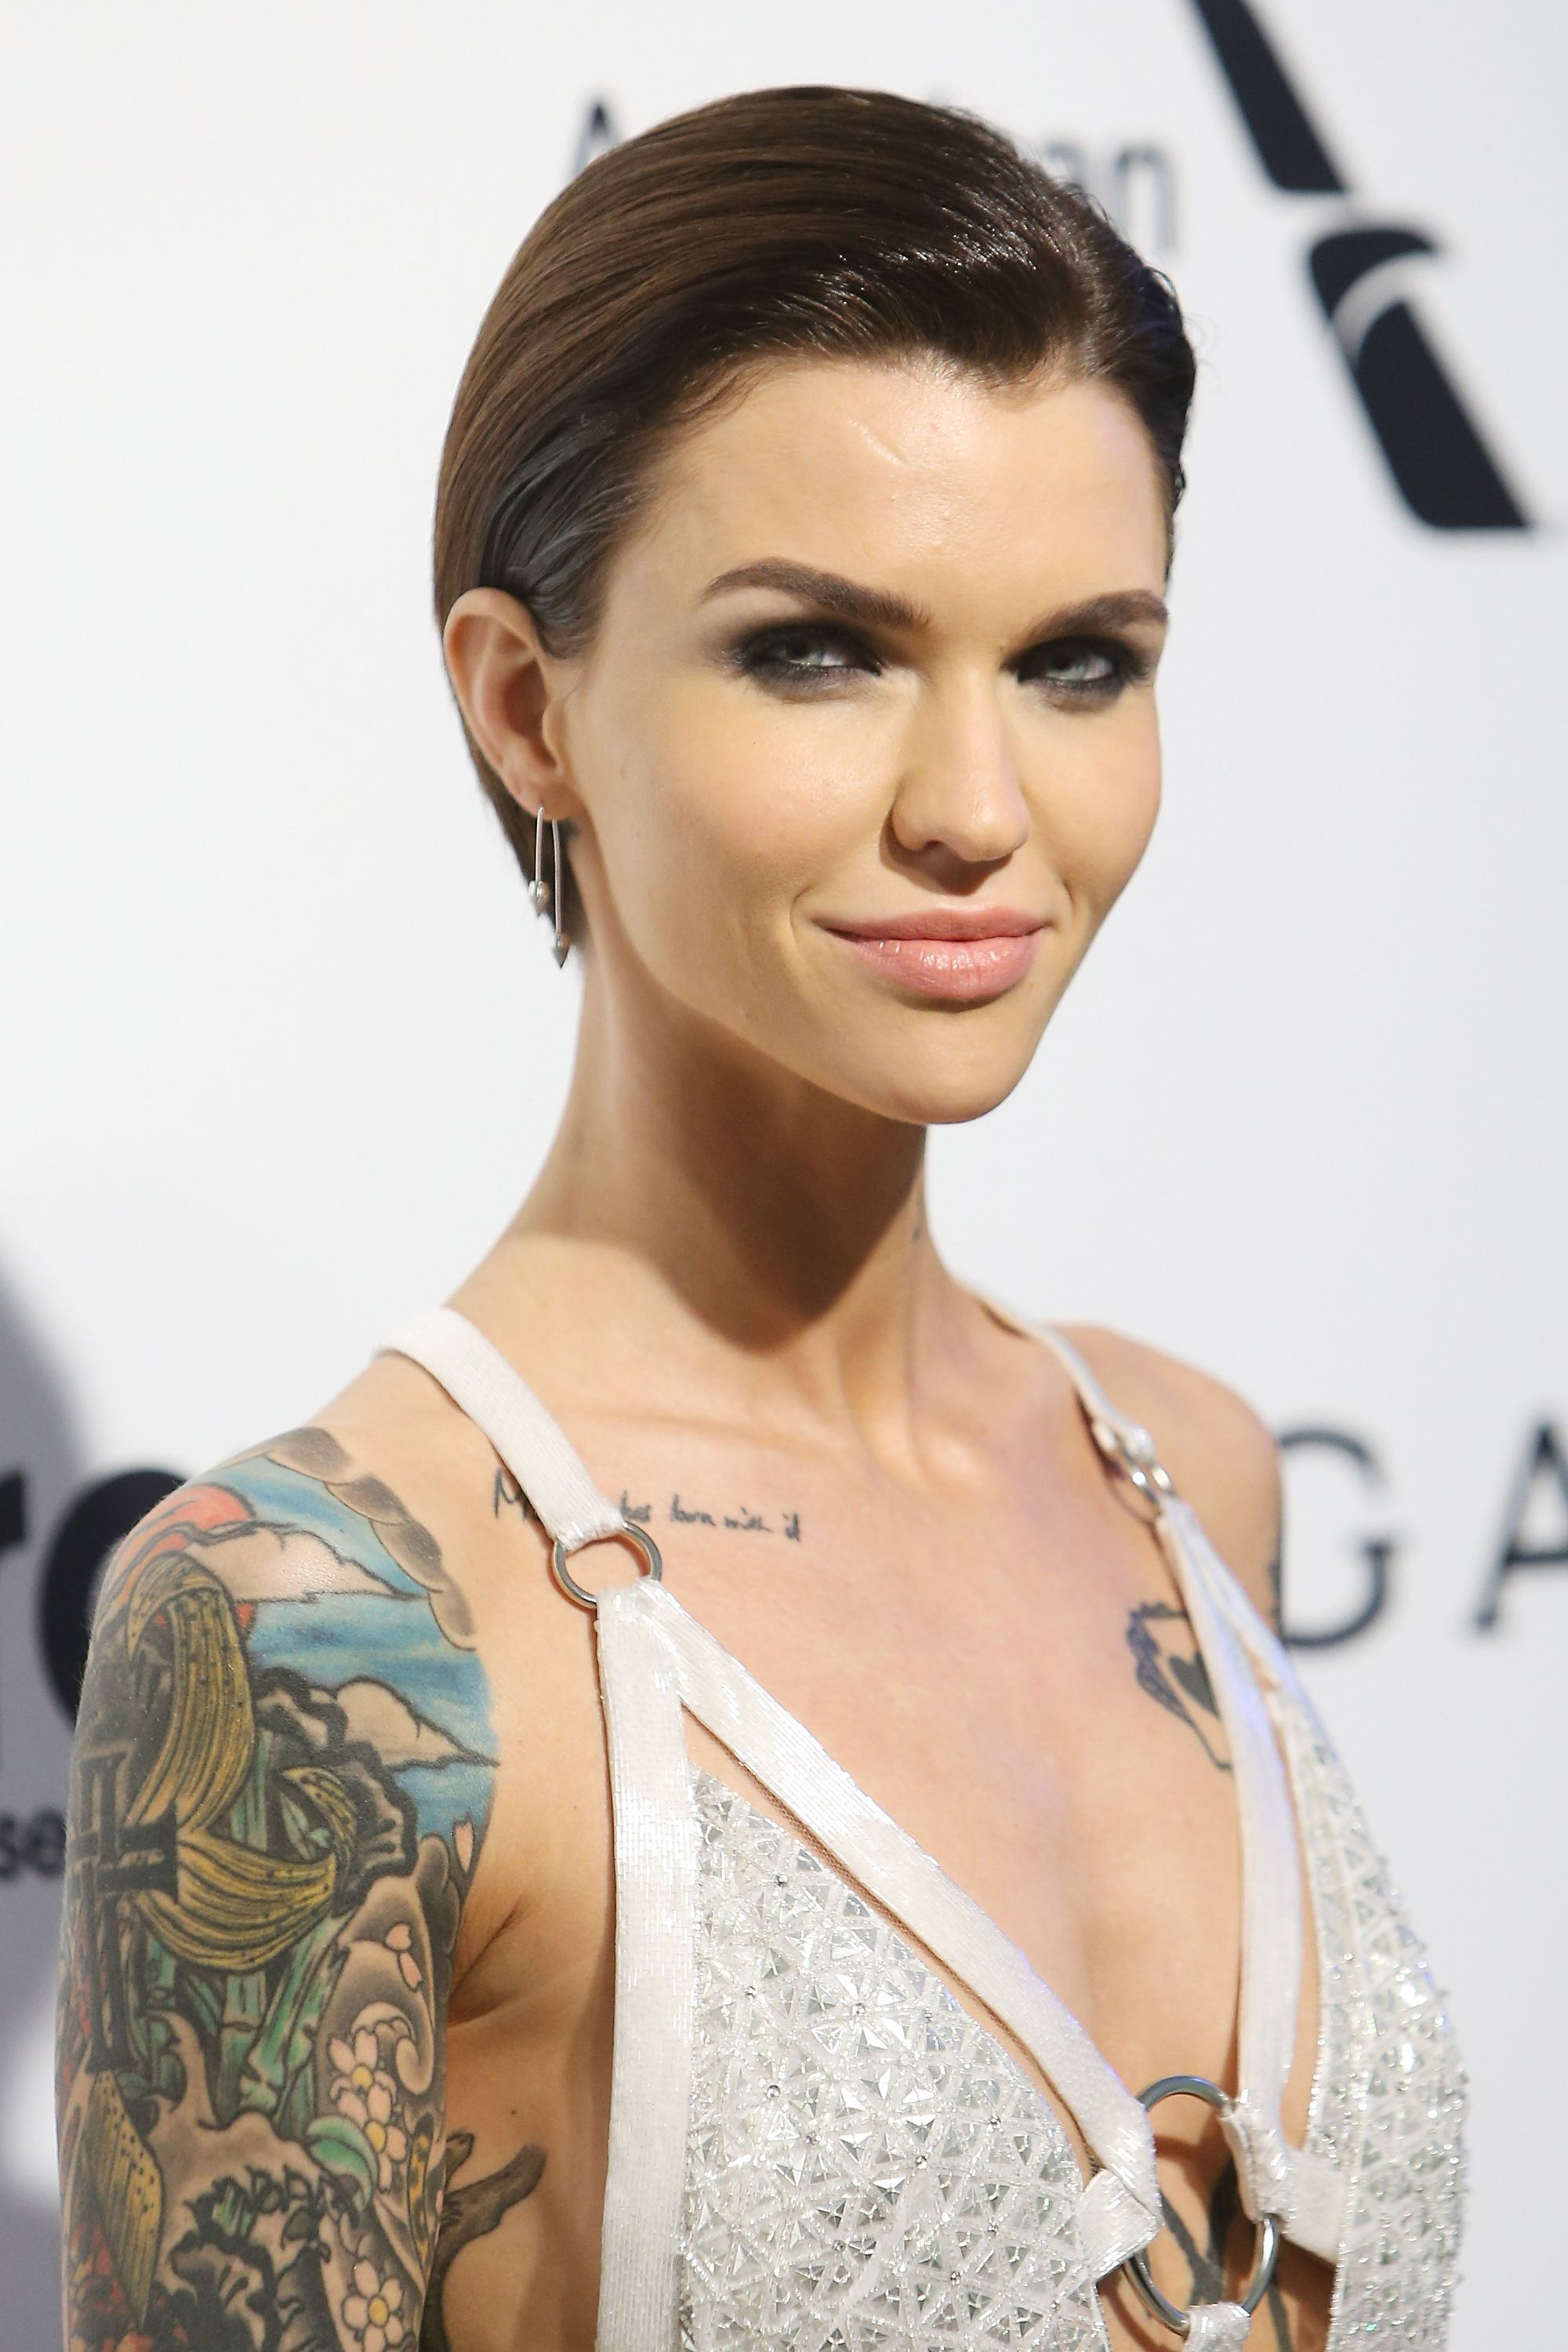 22 Famous Hair Fashion Ceplukan Short Slicked Back Hair Hot Hair Styles Womens Hairstyles